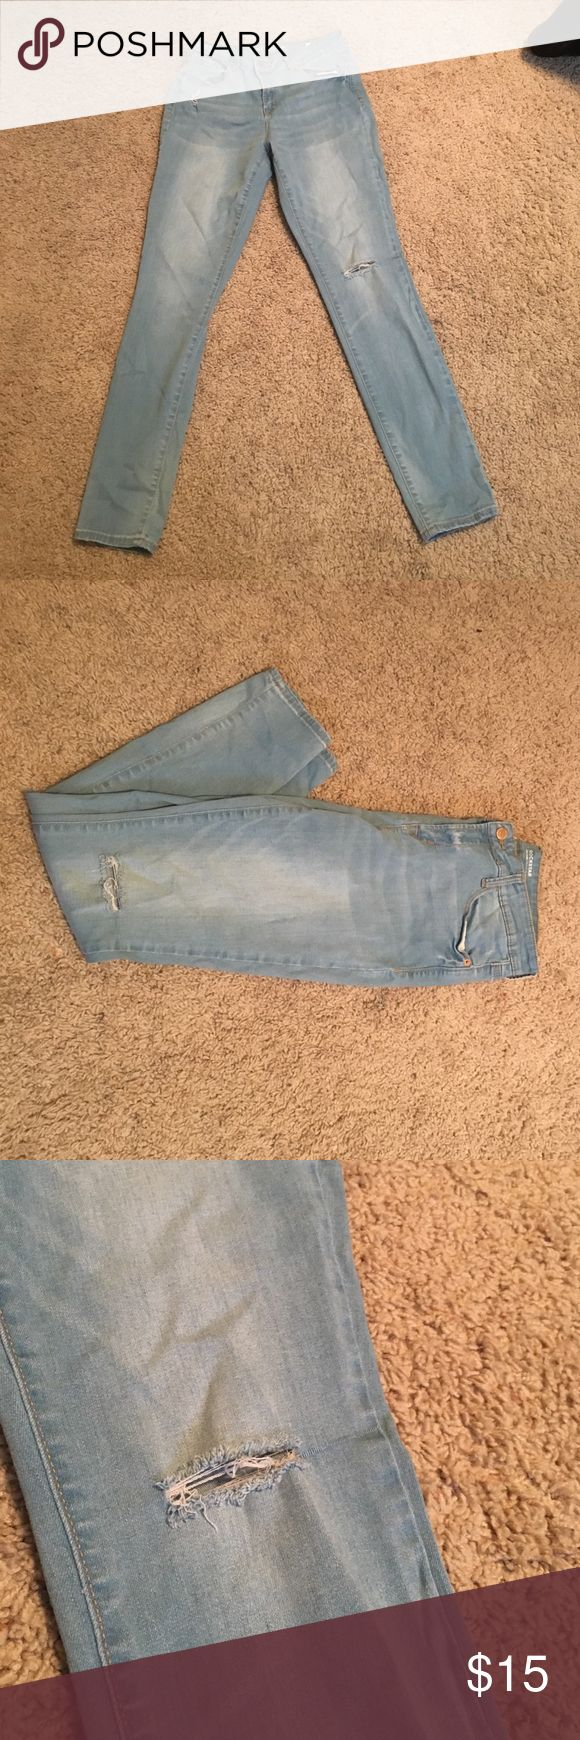 "Light blue skinny jeans NWOT Light blue Old Navy skinny jeans. I bought them and they were just too big. They have the ""destroyed look"" and are super comfy. Size 8 Old Navy Jeans Skinny"